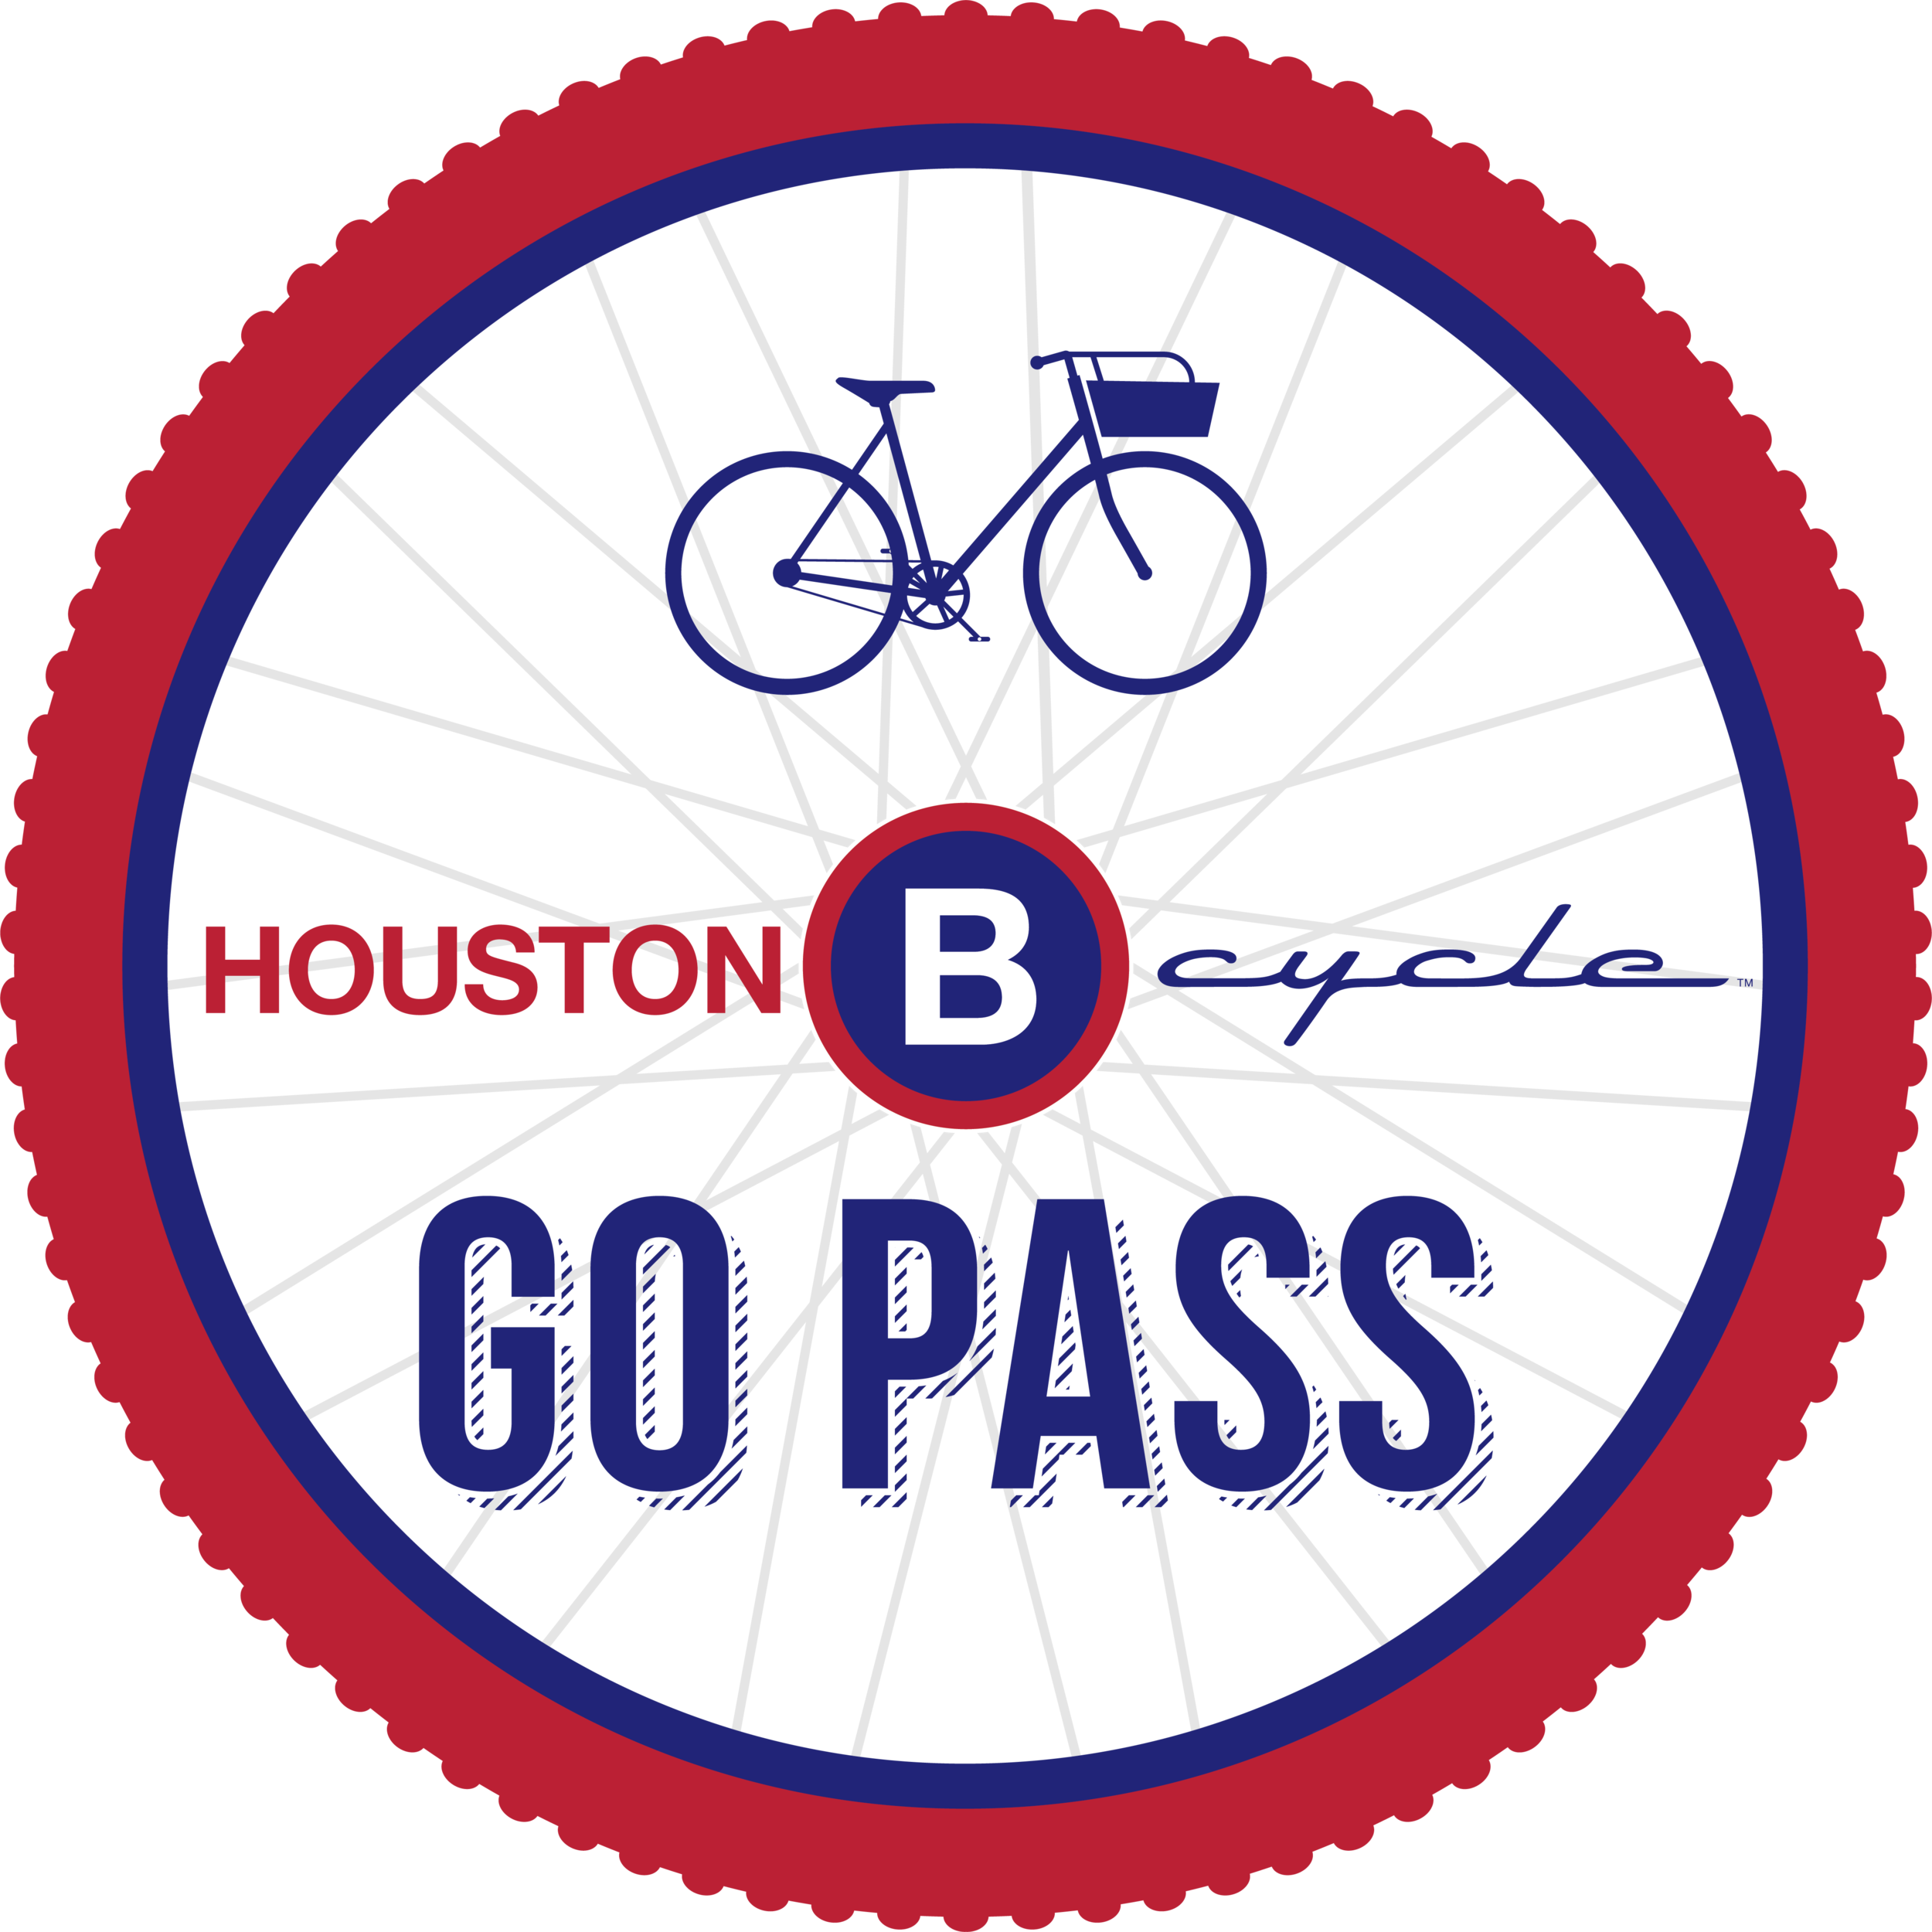 GO Pass 101 - LEARN MORE ABOUT THE GO PASS PILOT PROJECT BELOW!